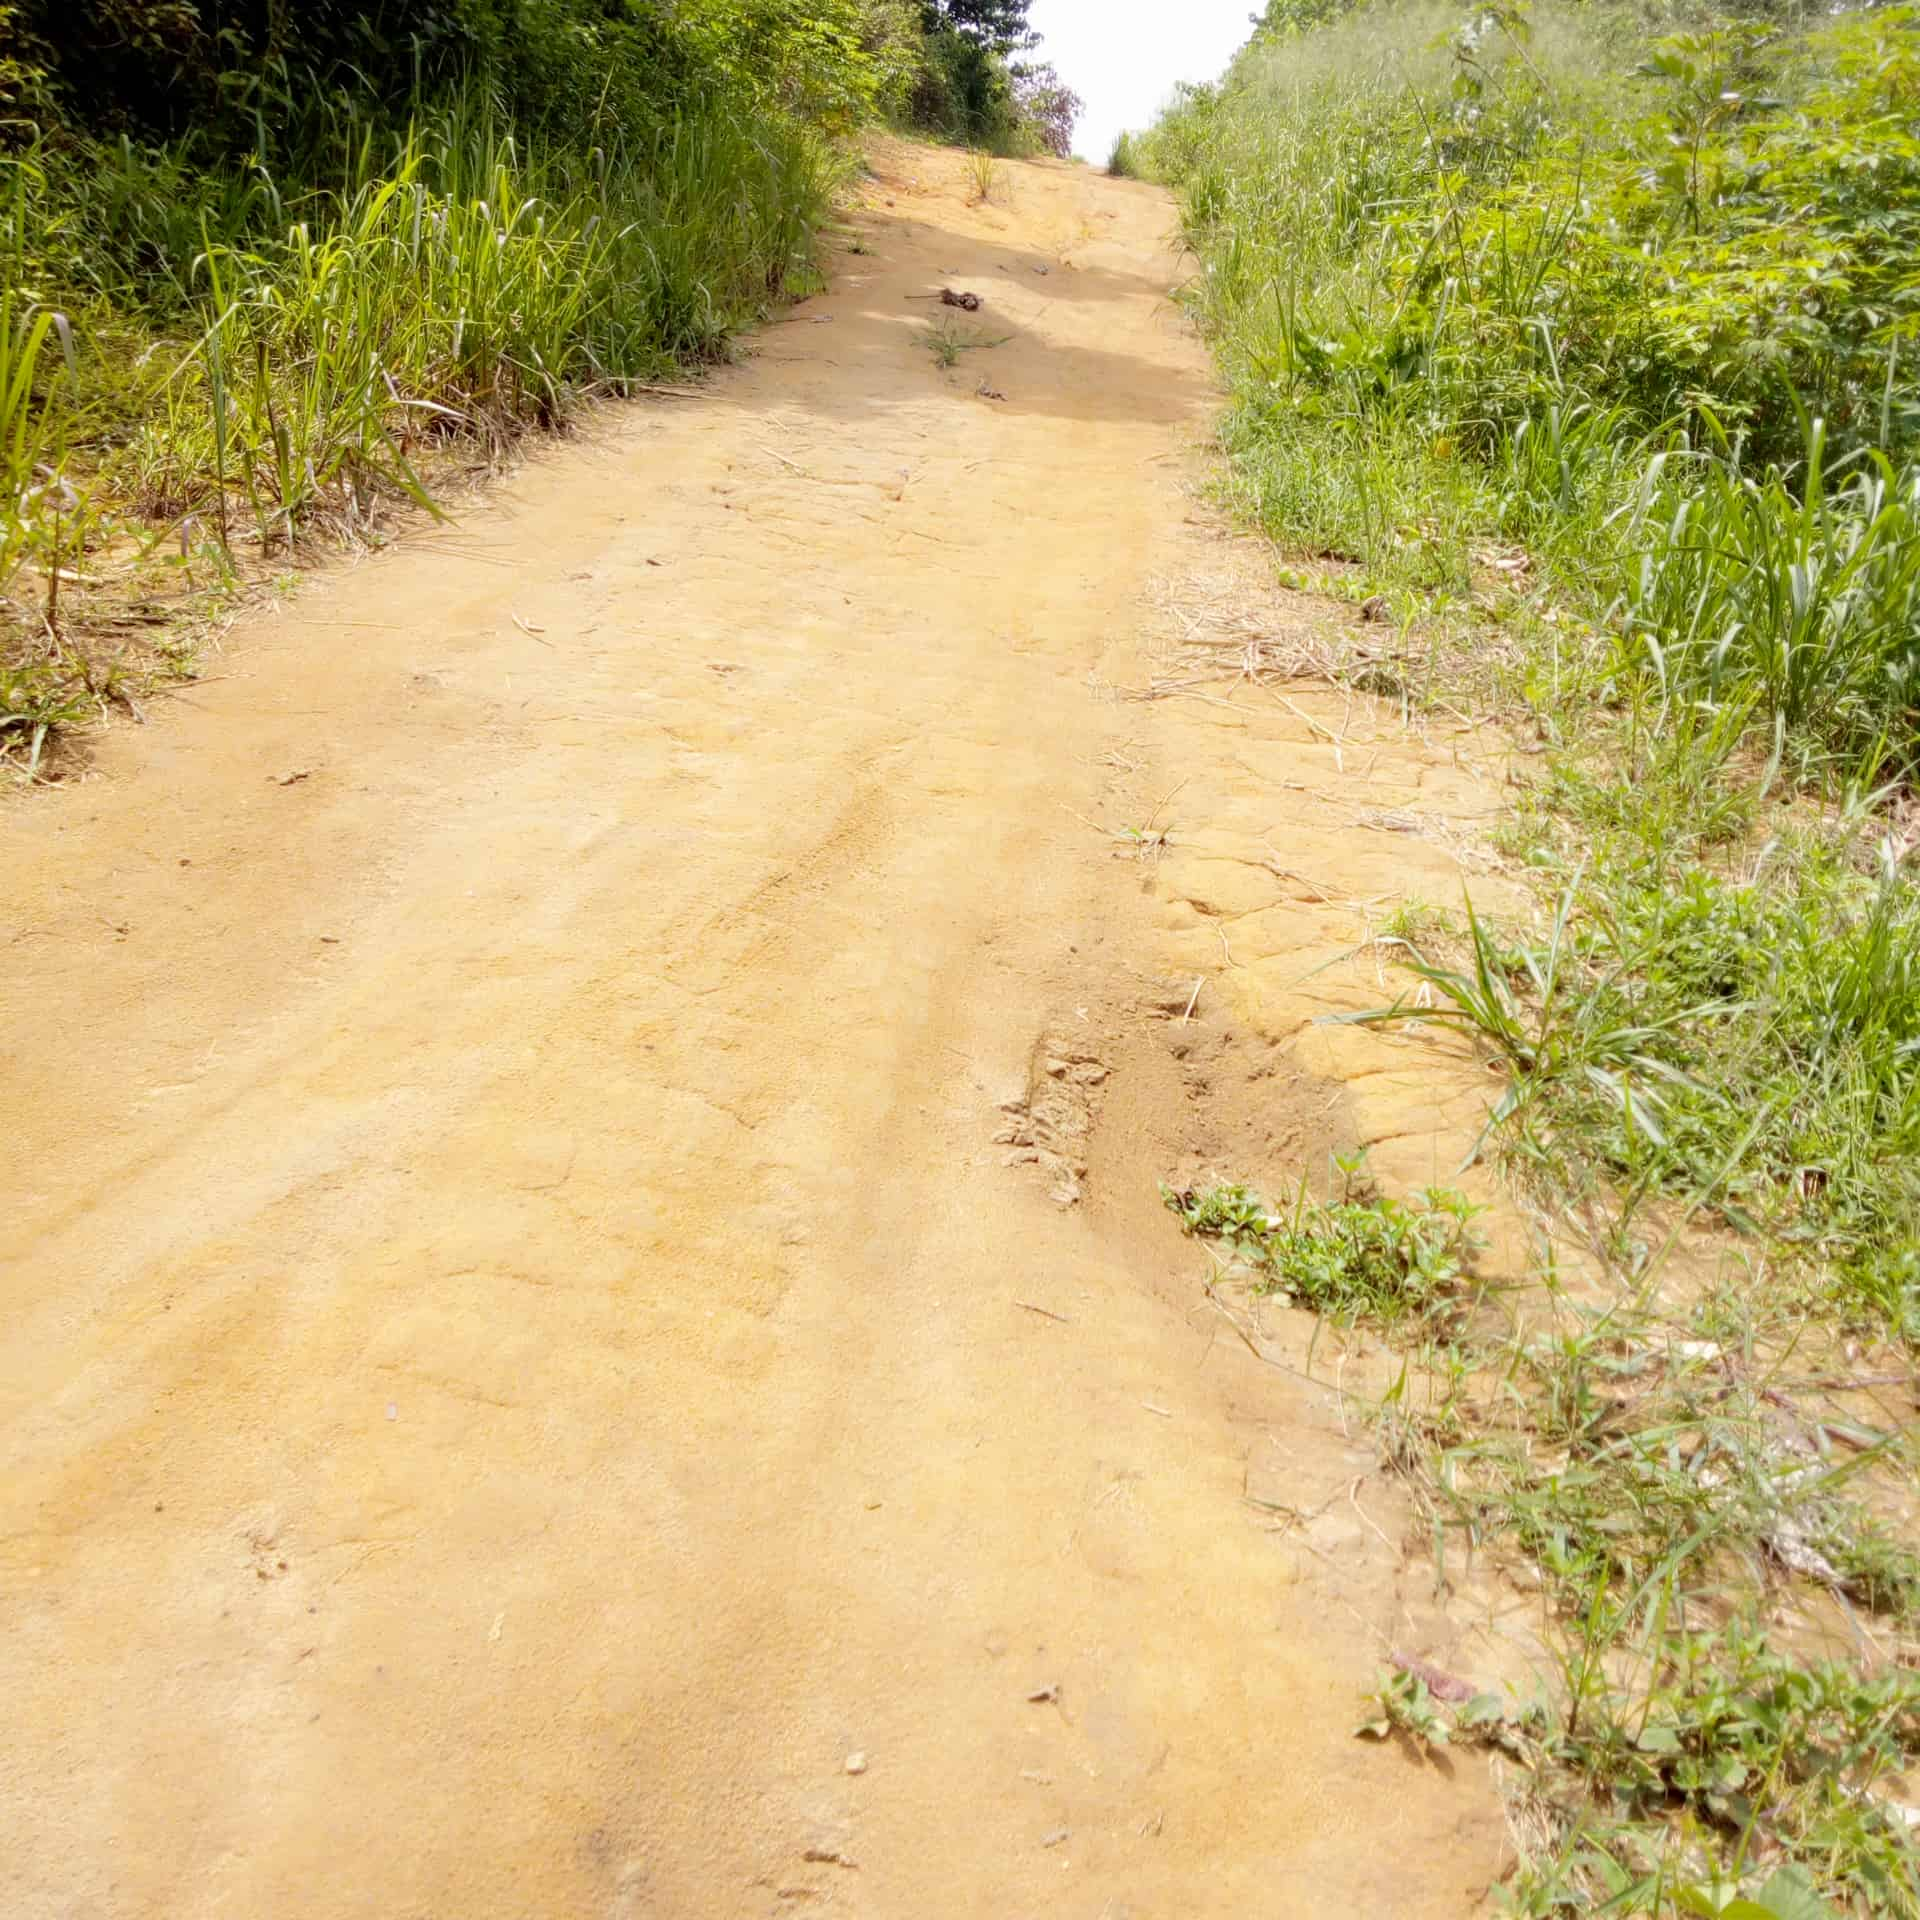 Land for sale at Douala, PK 19, Pk19 - 1000 m2 - 50 000 000 FCFA